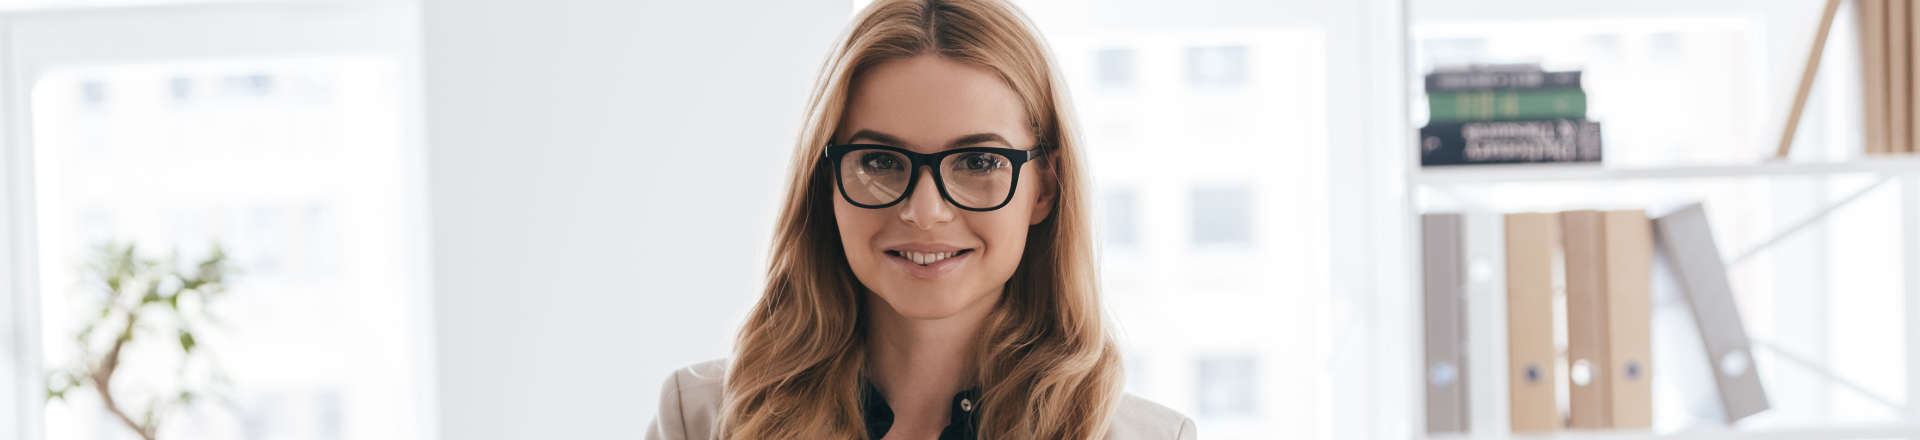 young woman wearing glasses at work in the office